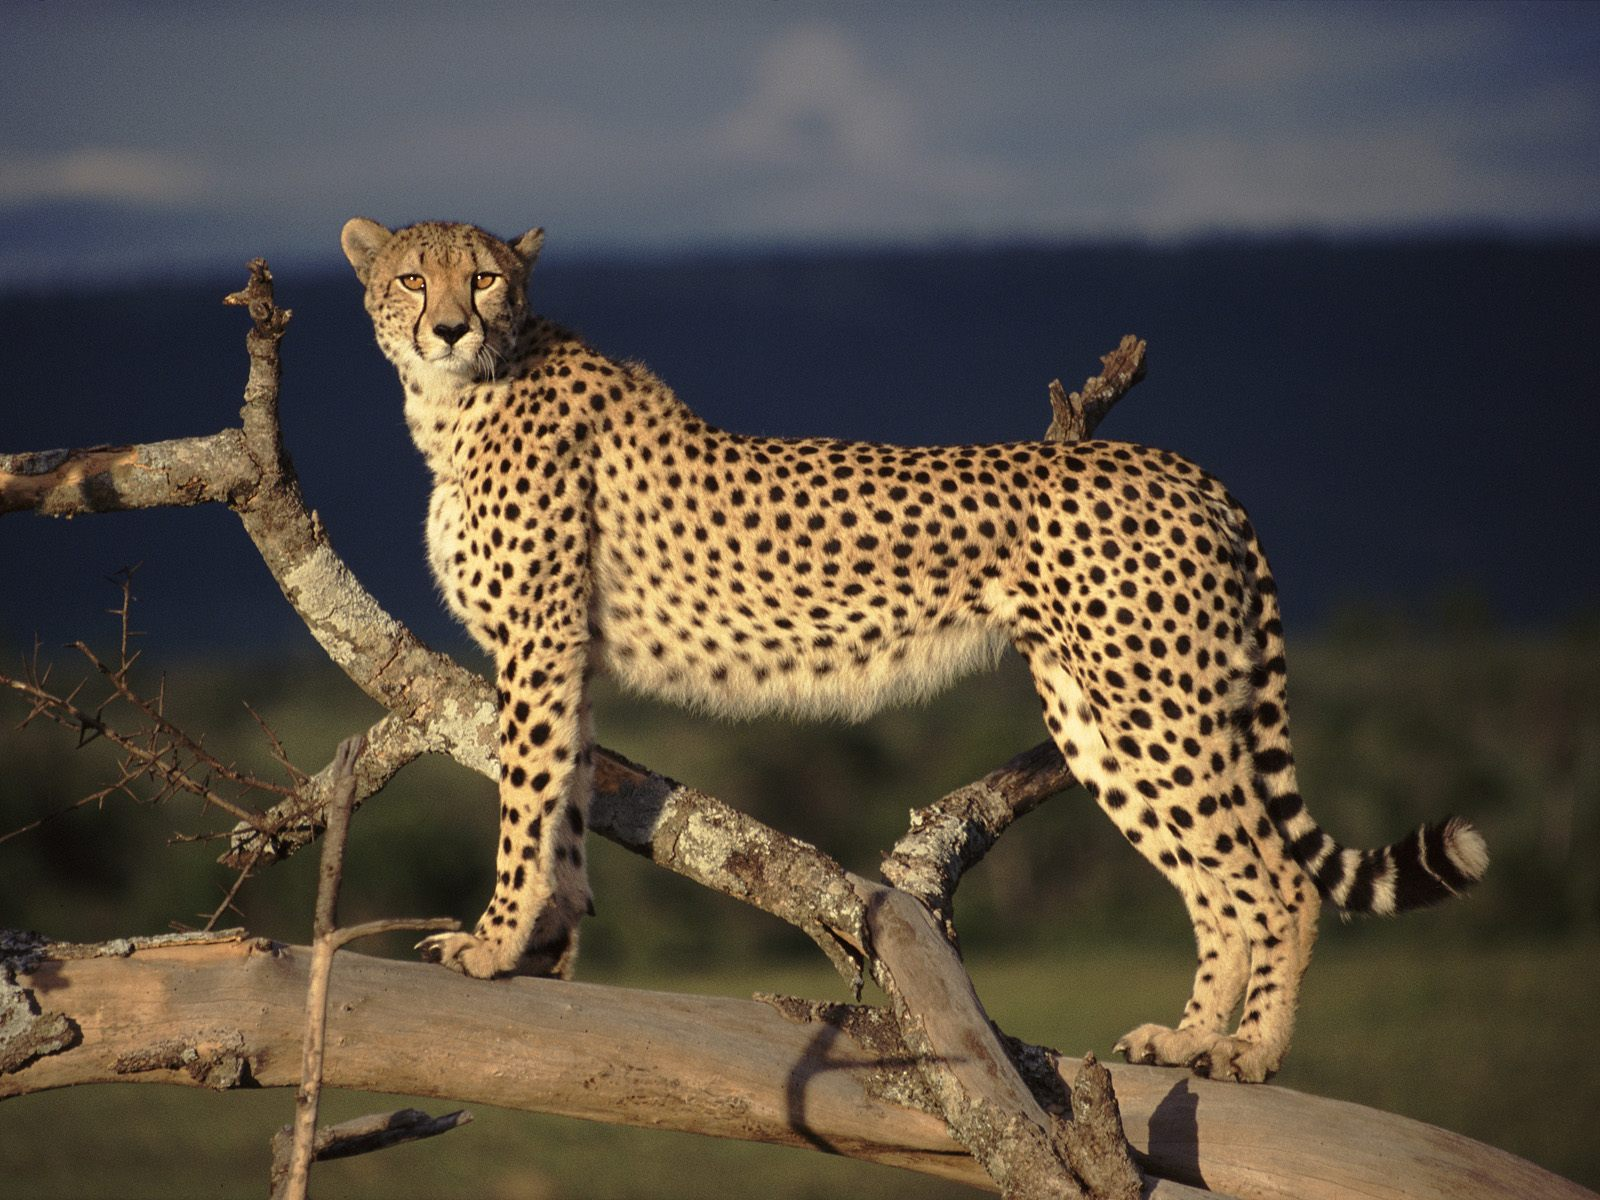 Cheetah cat